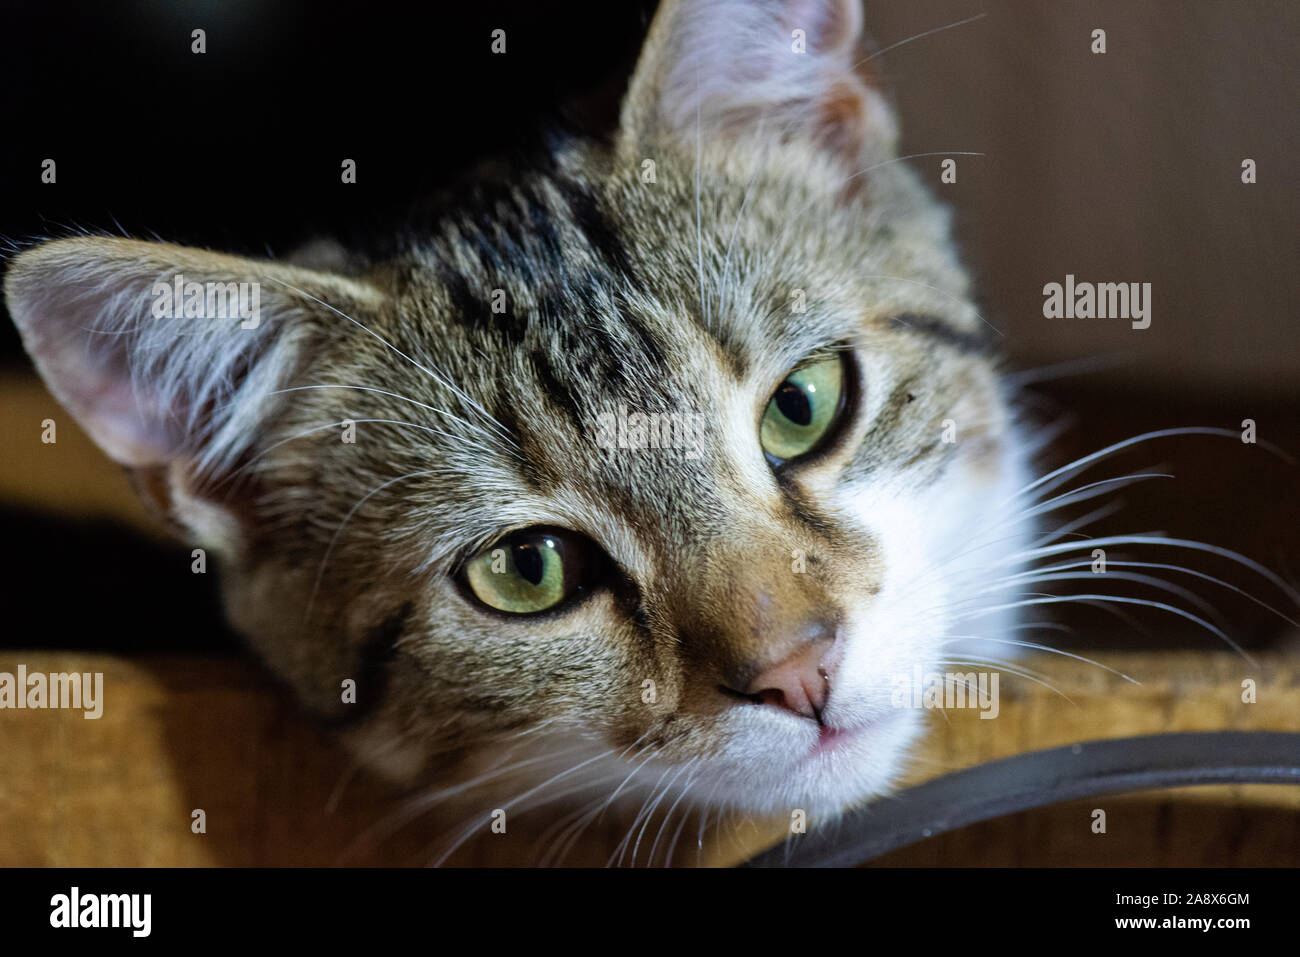 A cute adorable little kitten with green eyes relaxes a wooden basket Stock Photo